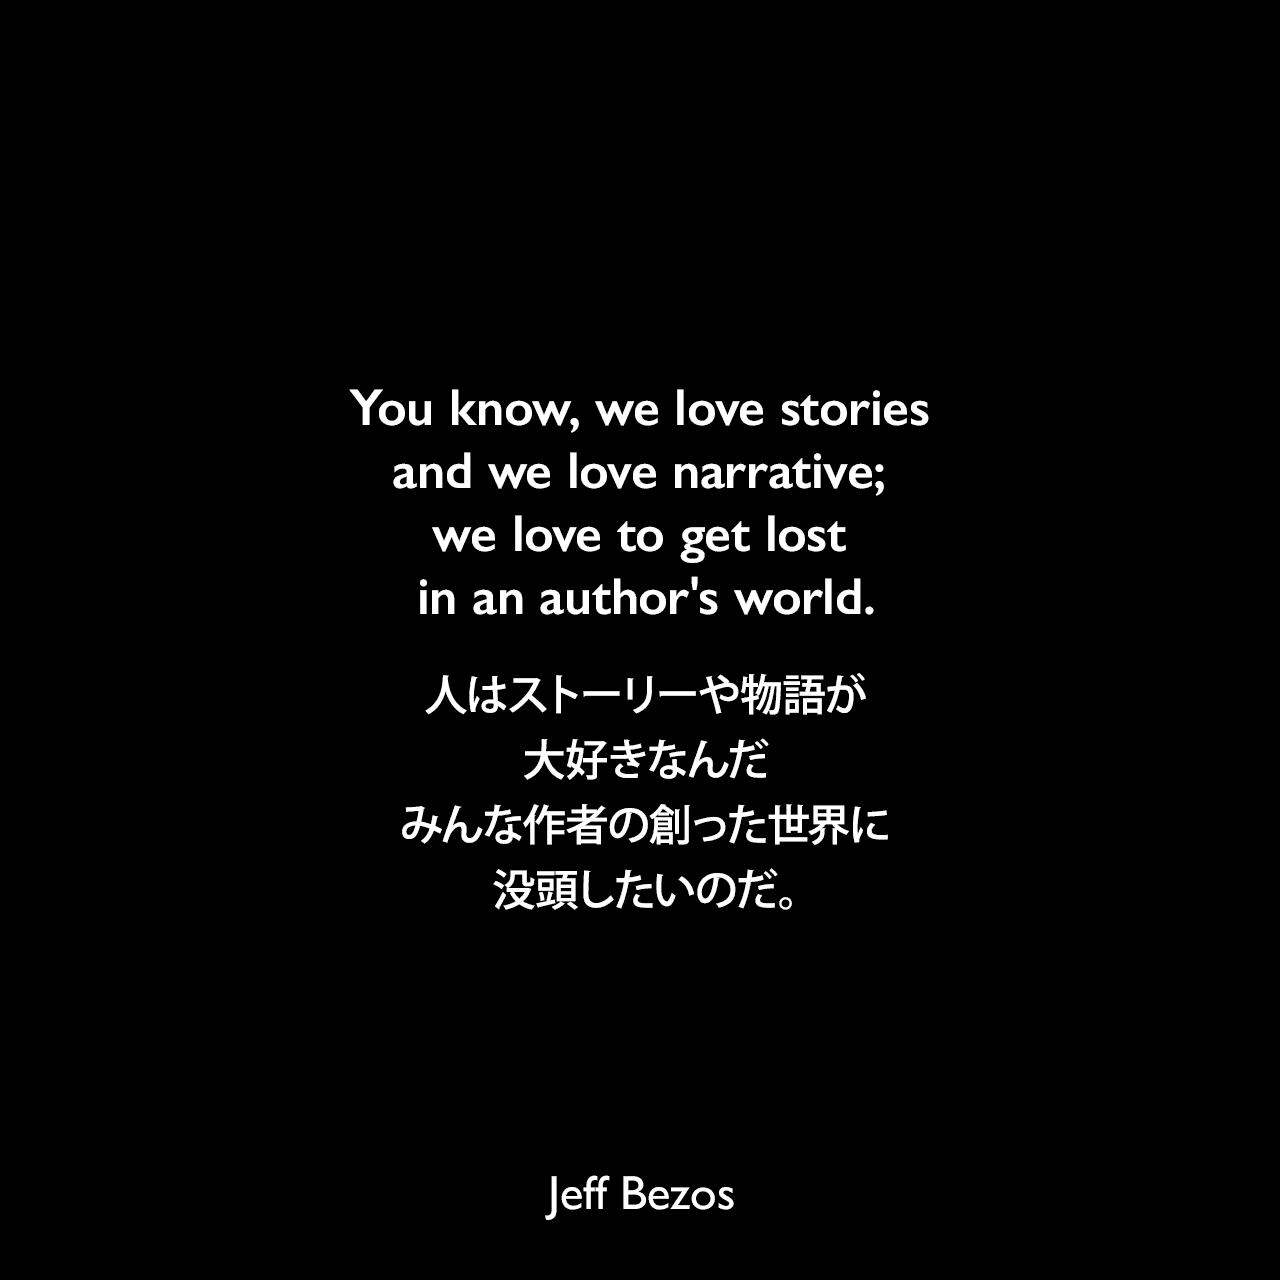 You know, we love stories and we love narrative; we love to get lost in an author's world.人はストーリーや物語が大好きなんだ、みんな作者の創った世界に没頭したいのだ。Jeff Bezos